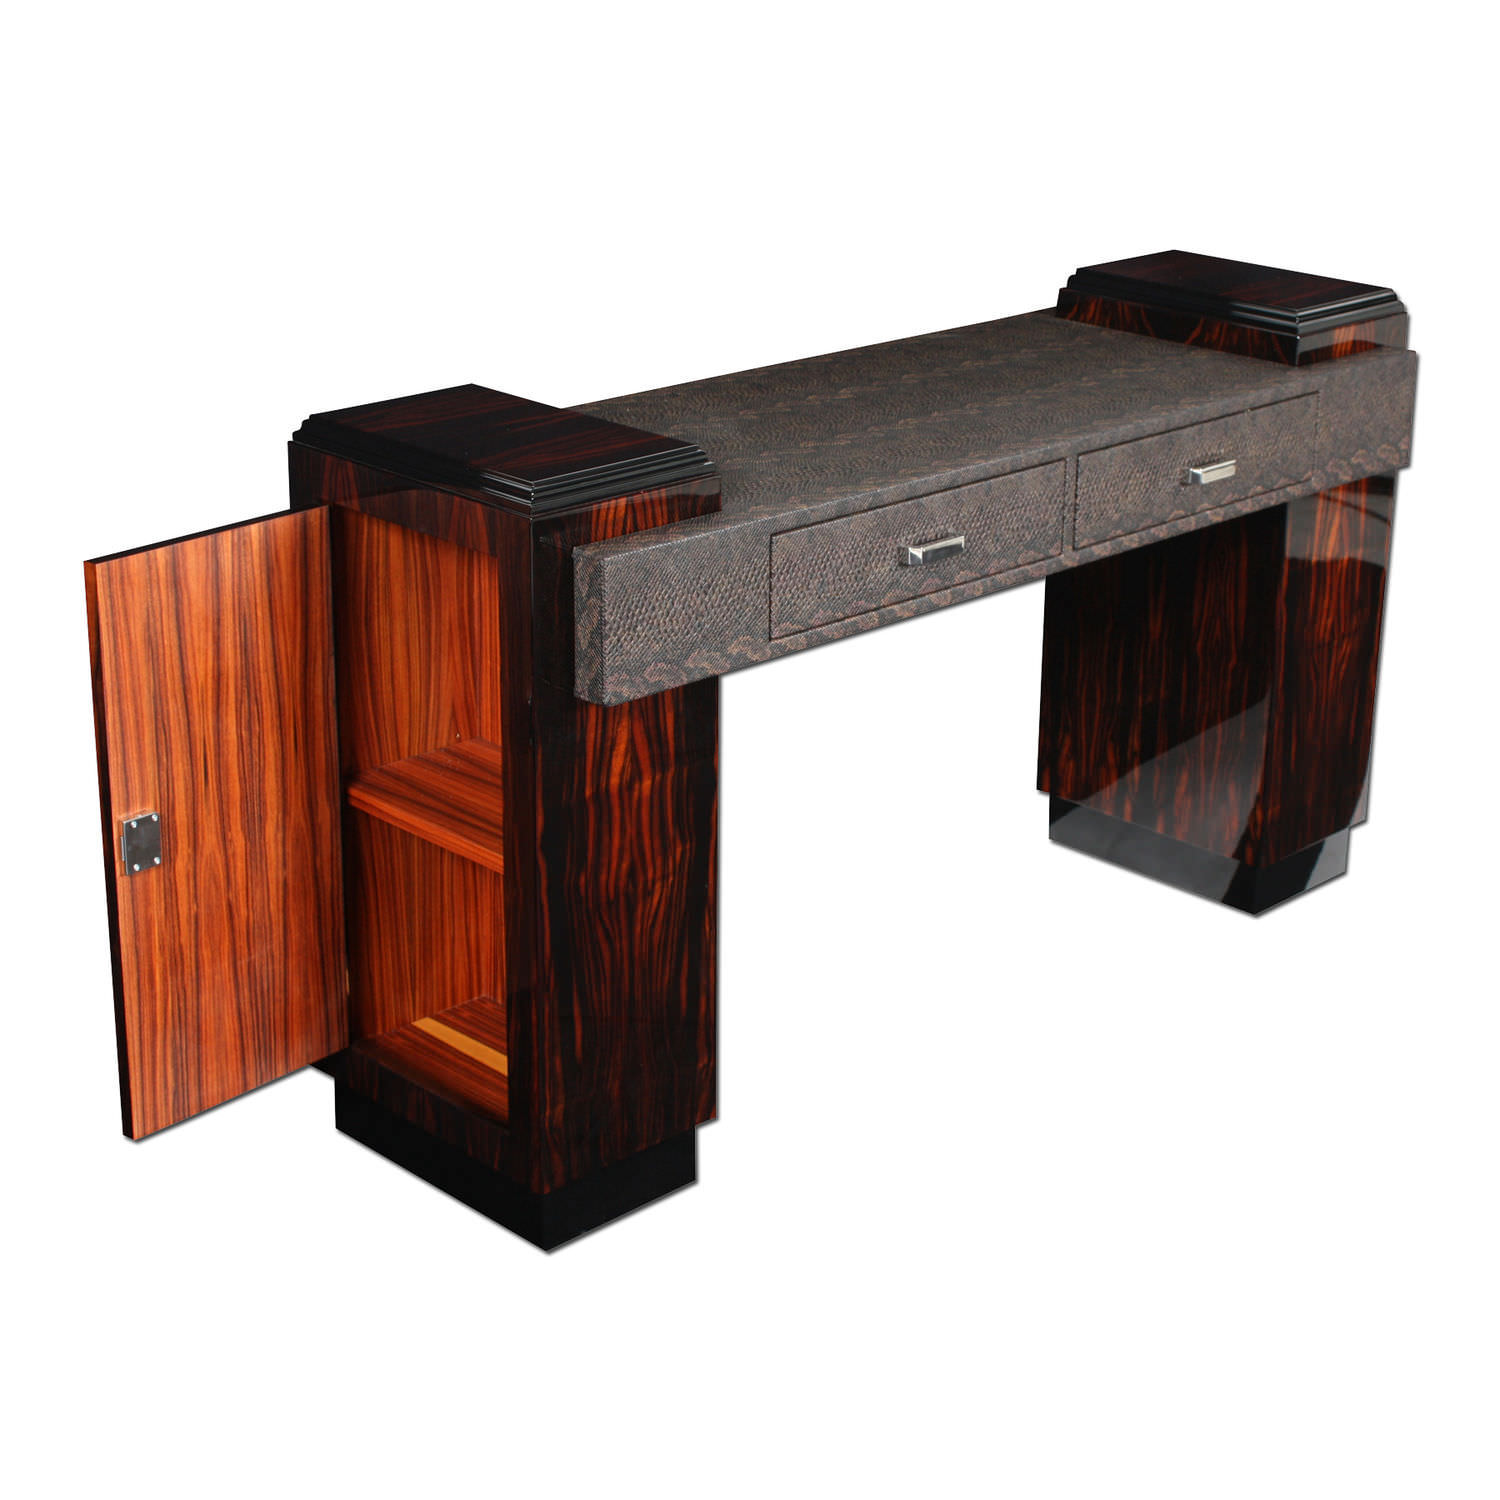 Macassar Ebony Desk Art Deco D023